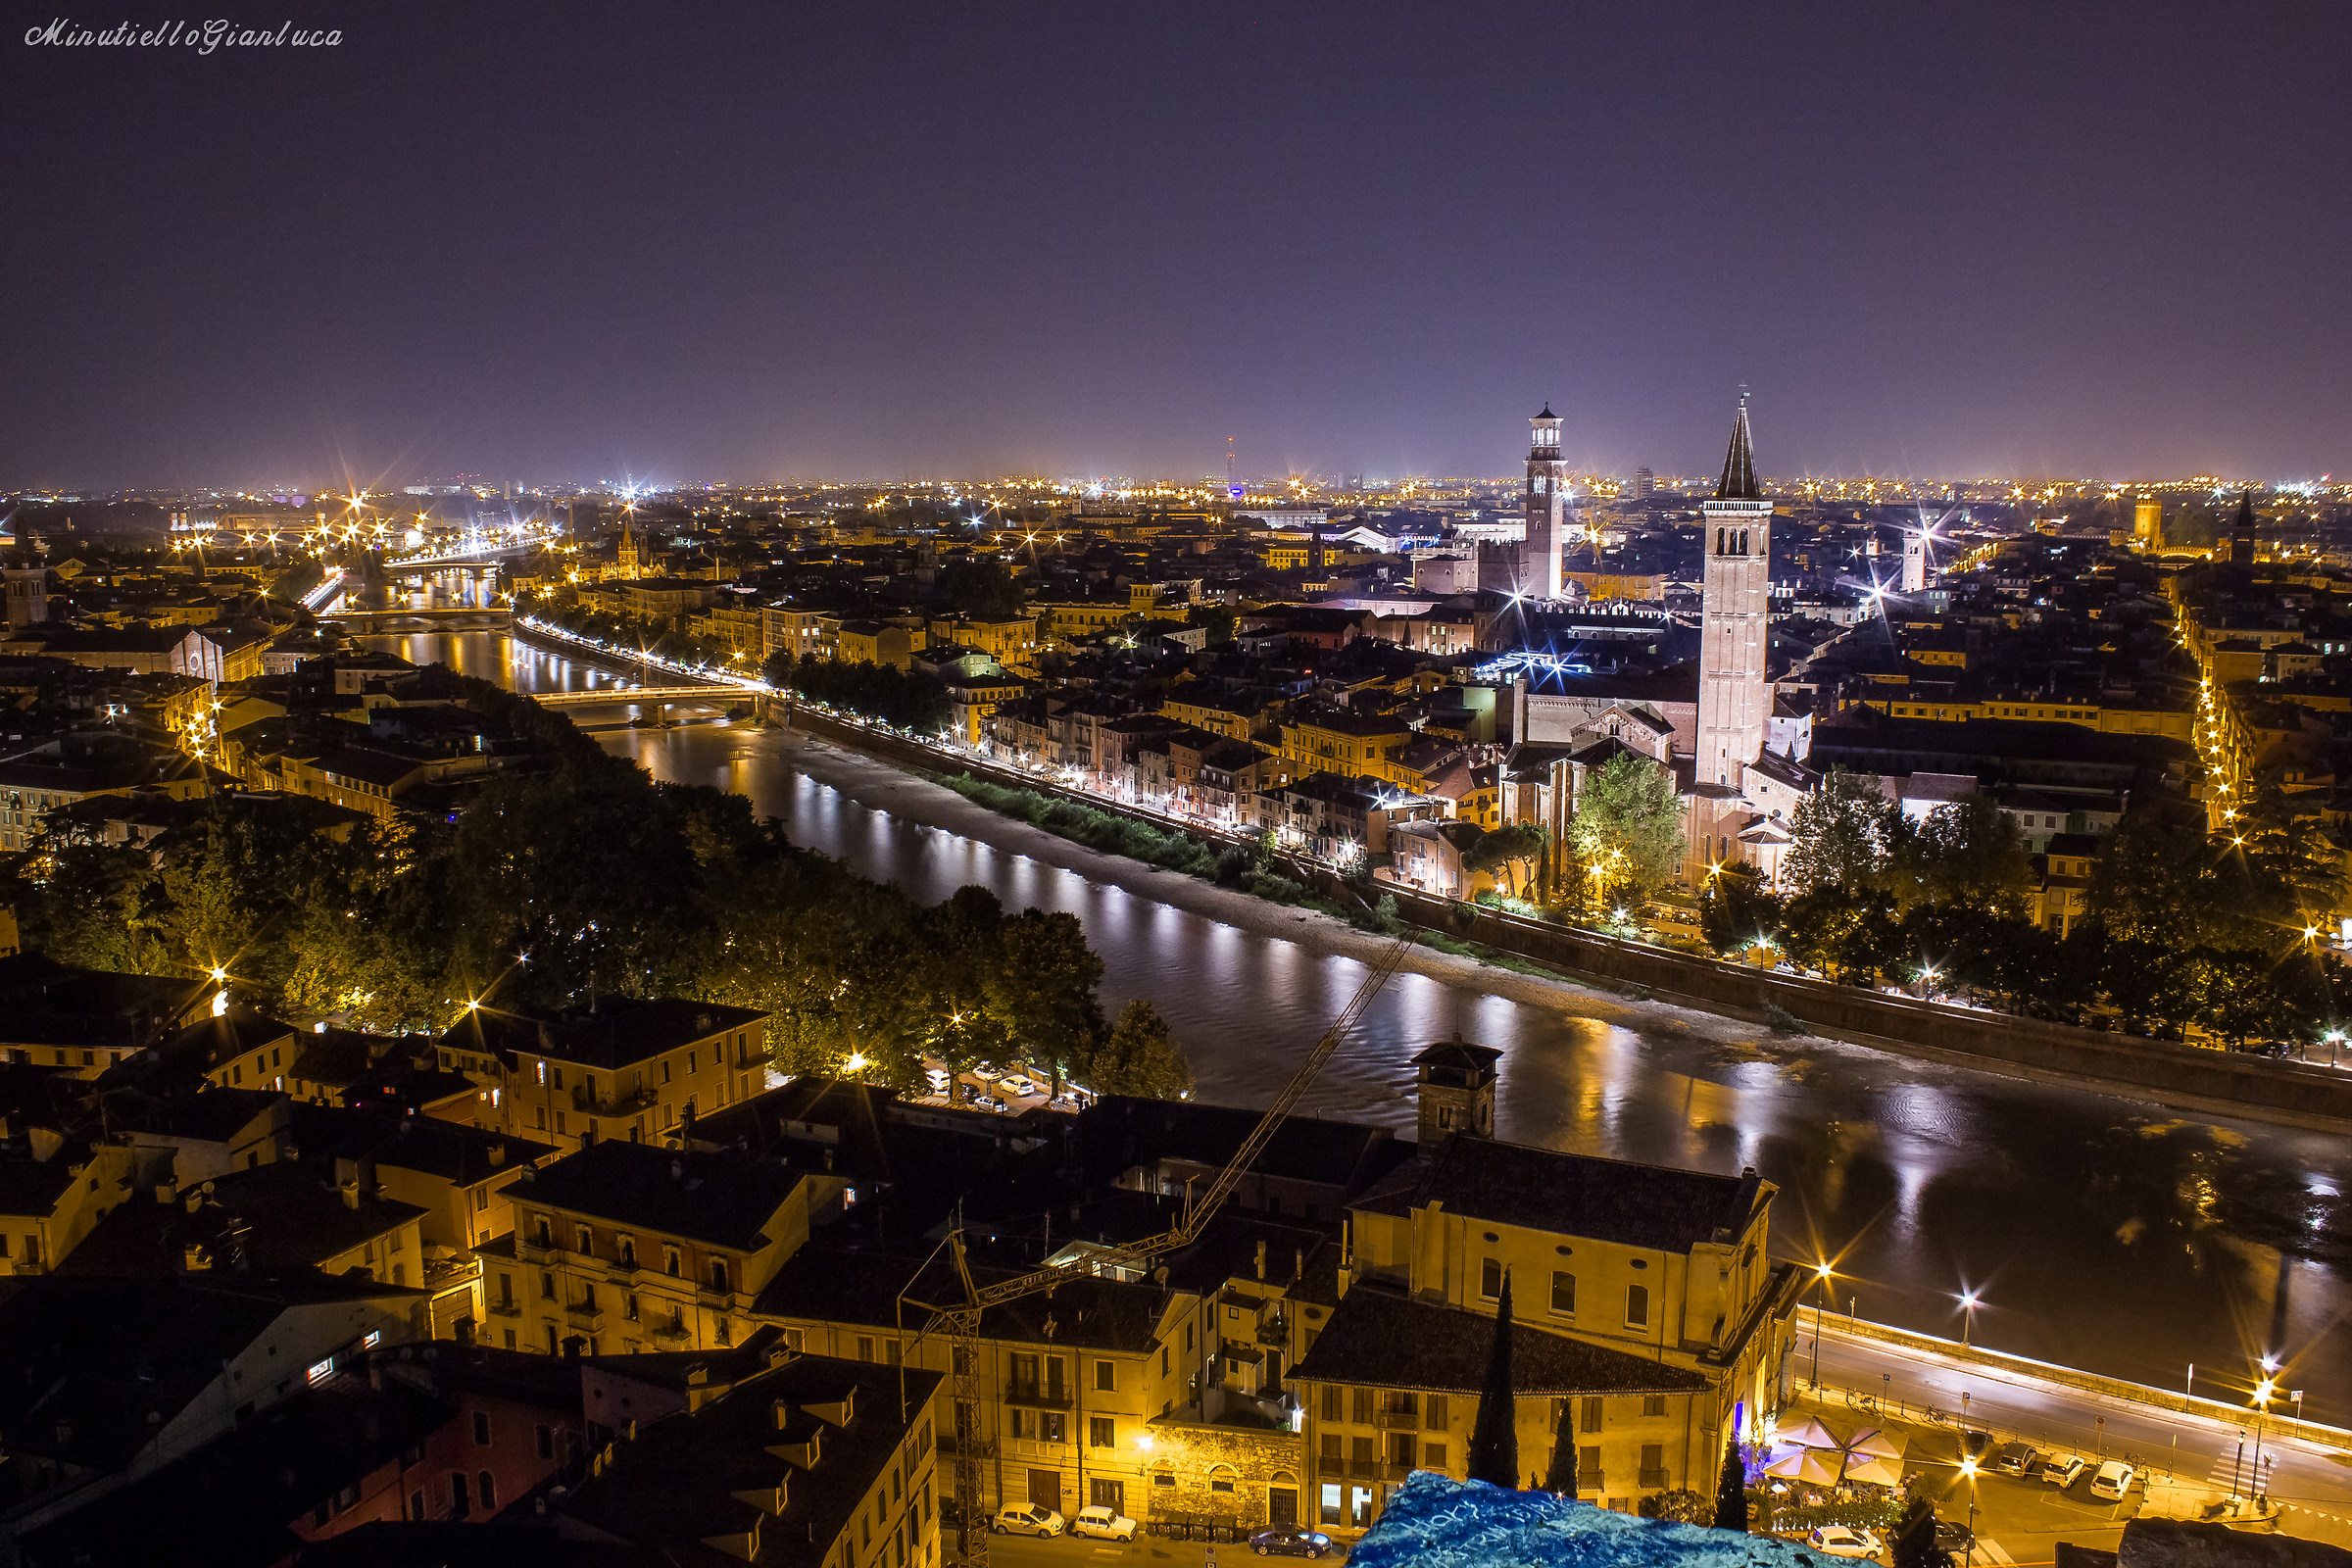 Verona by night...